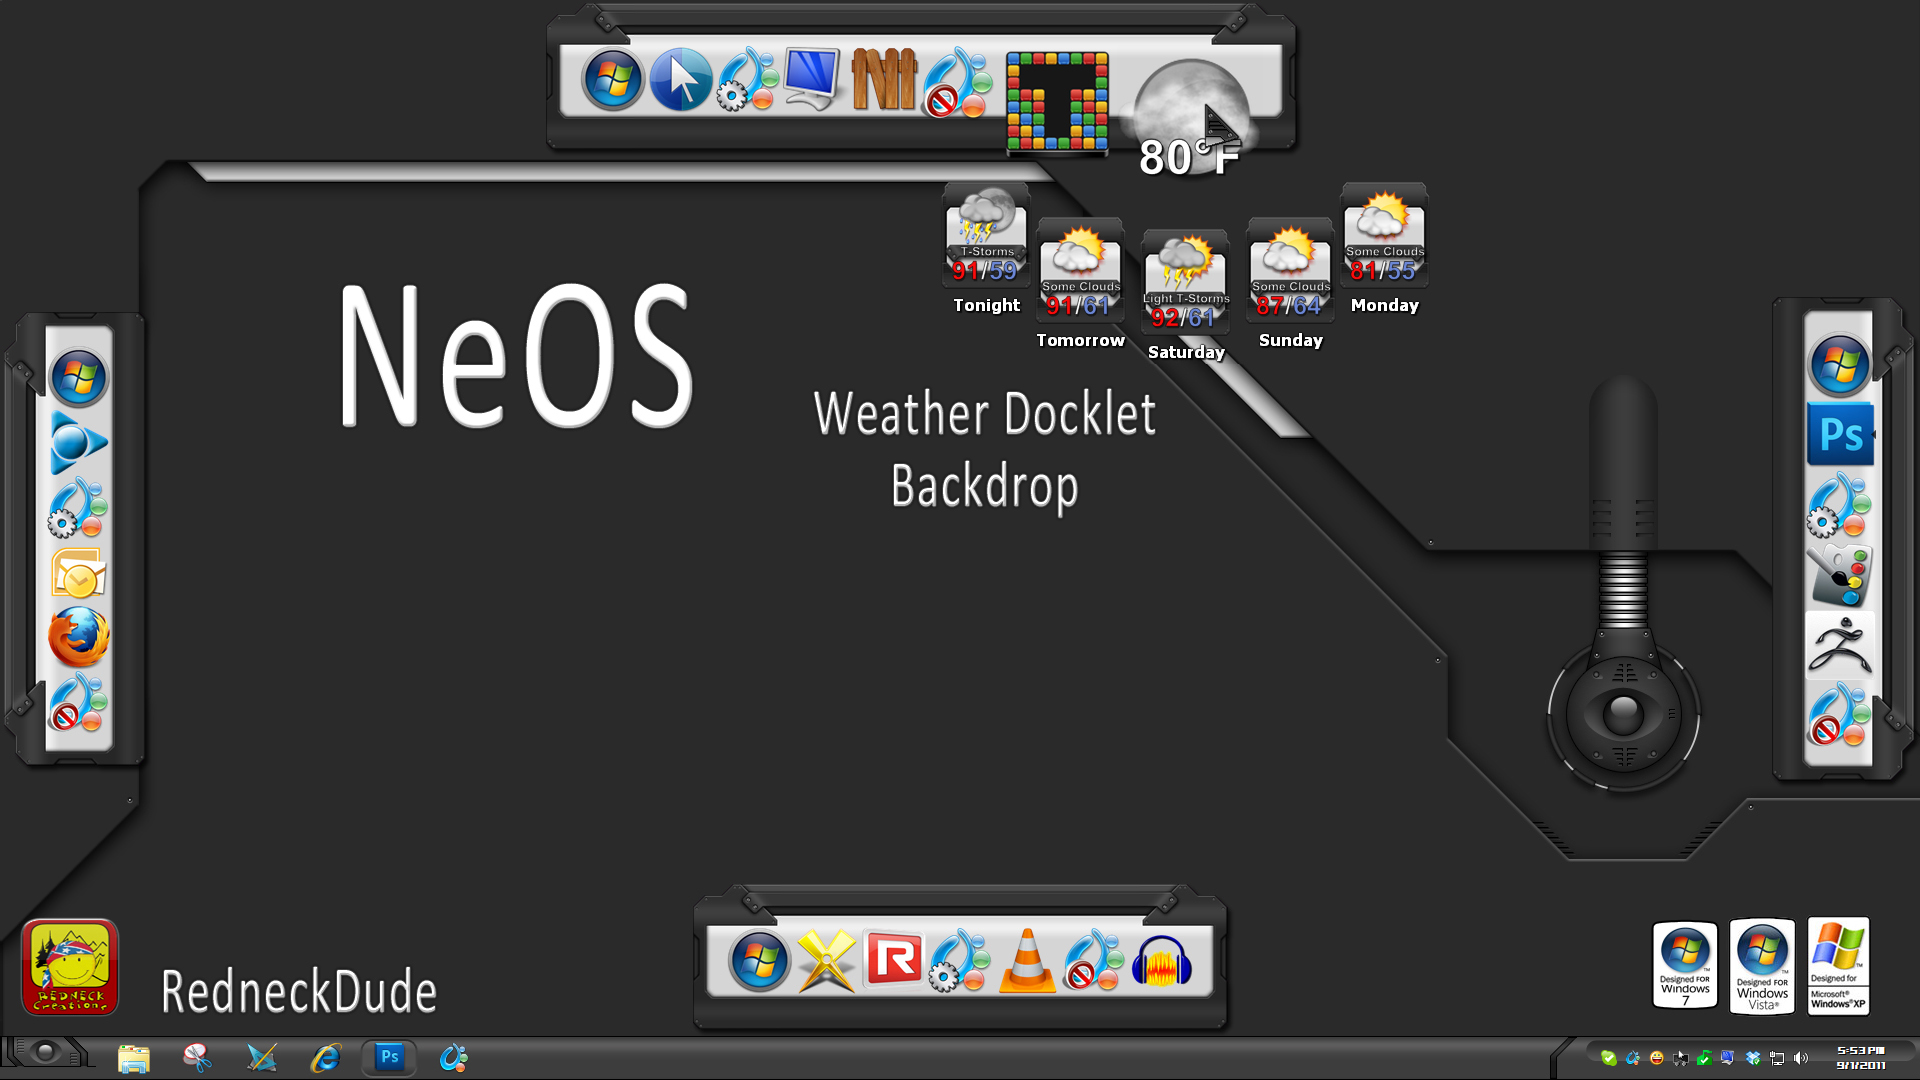 NeOS Weather Docklet Backdrop